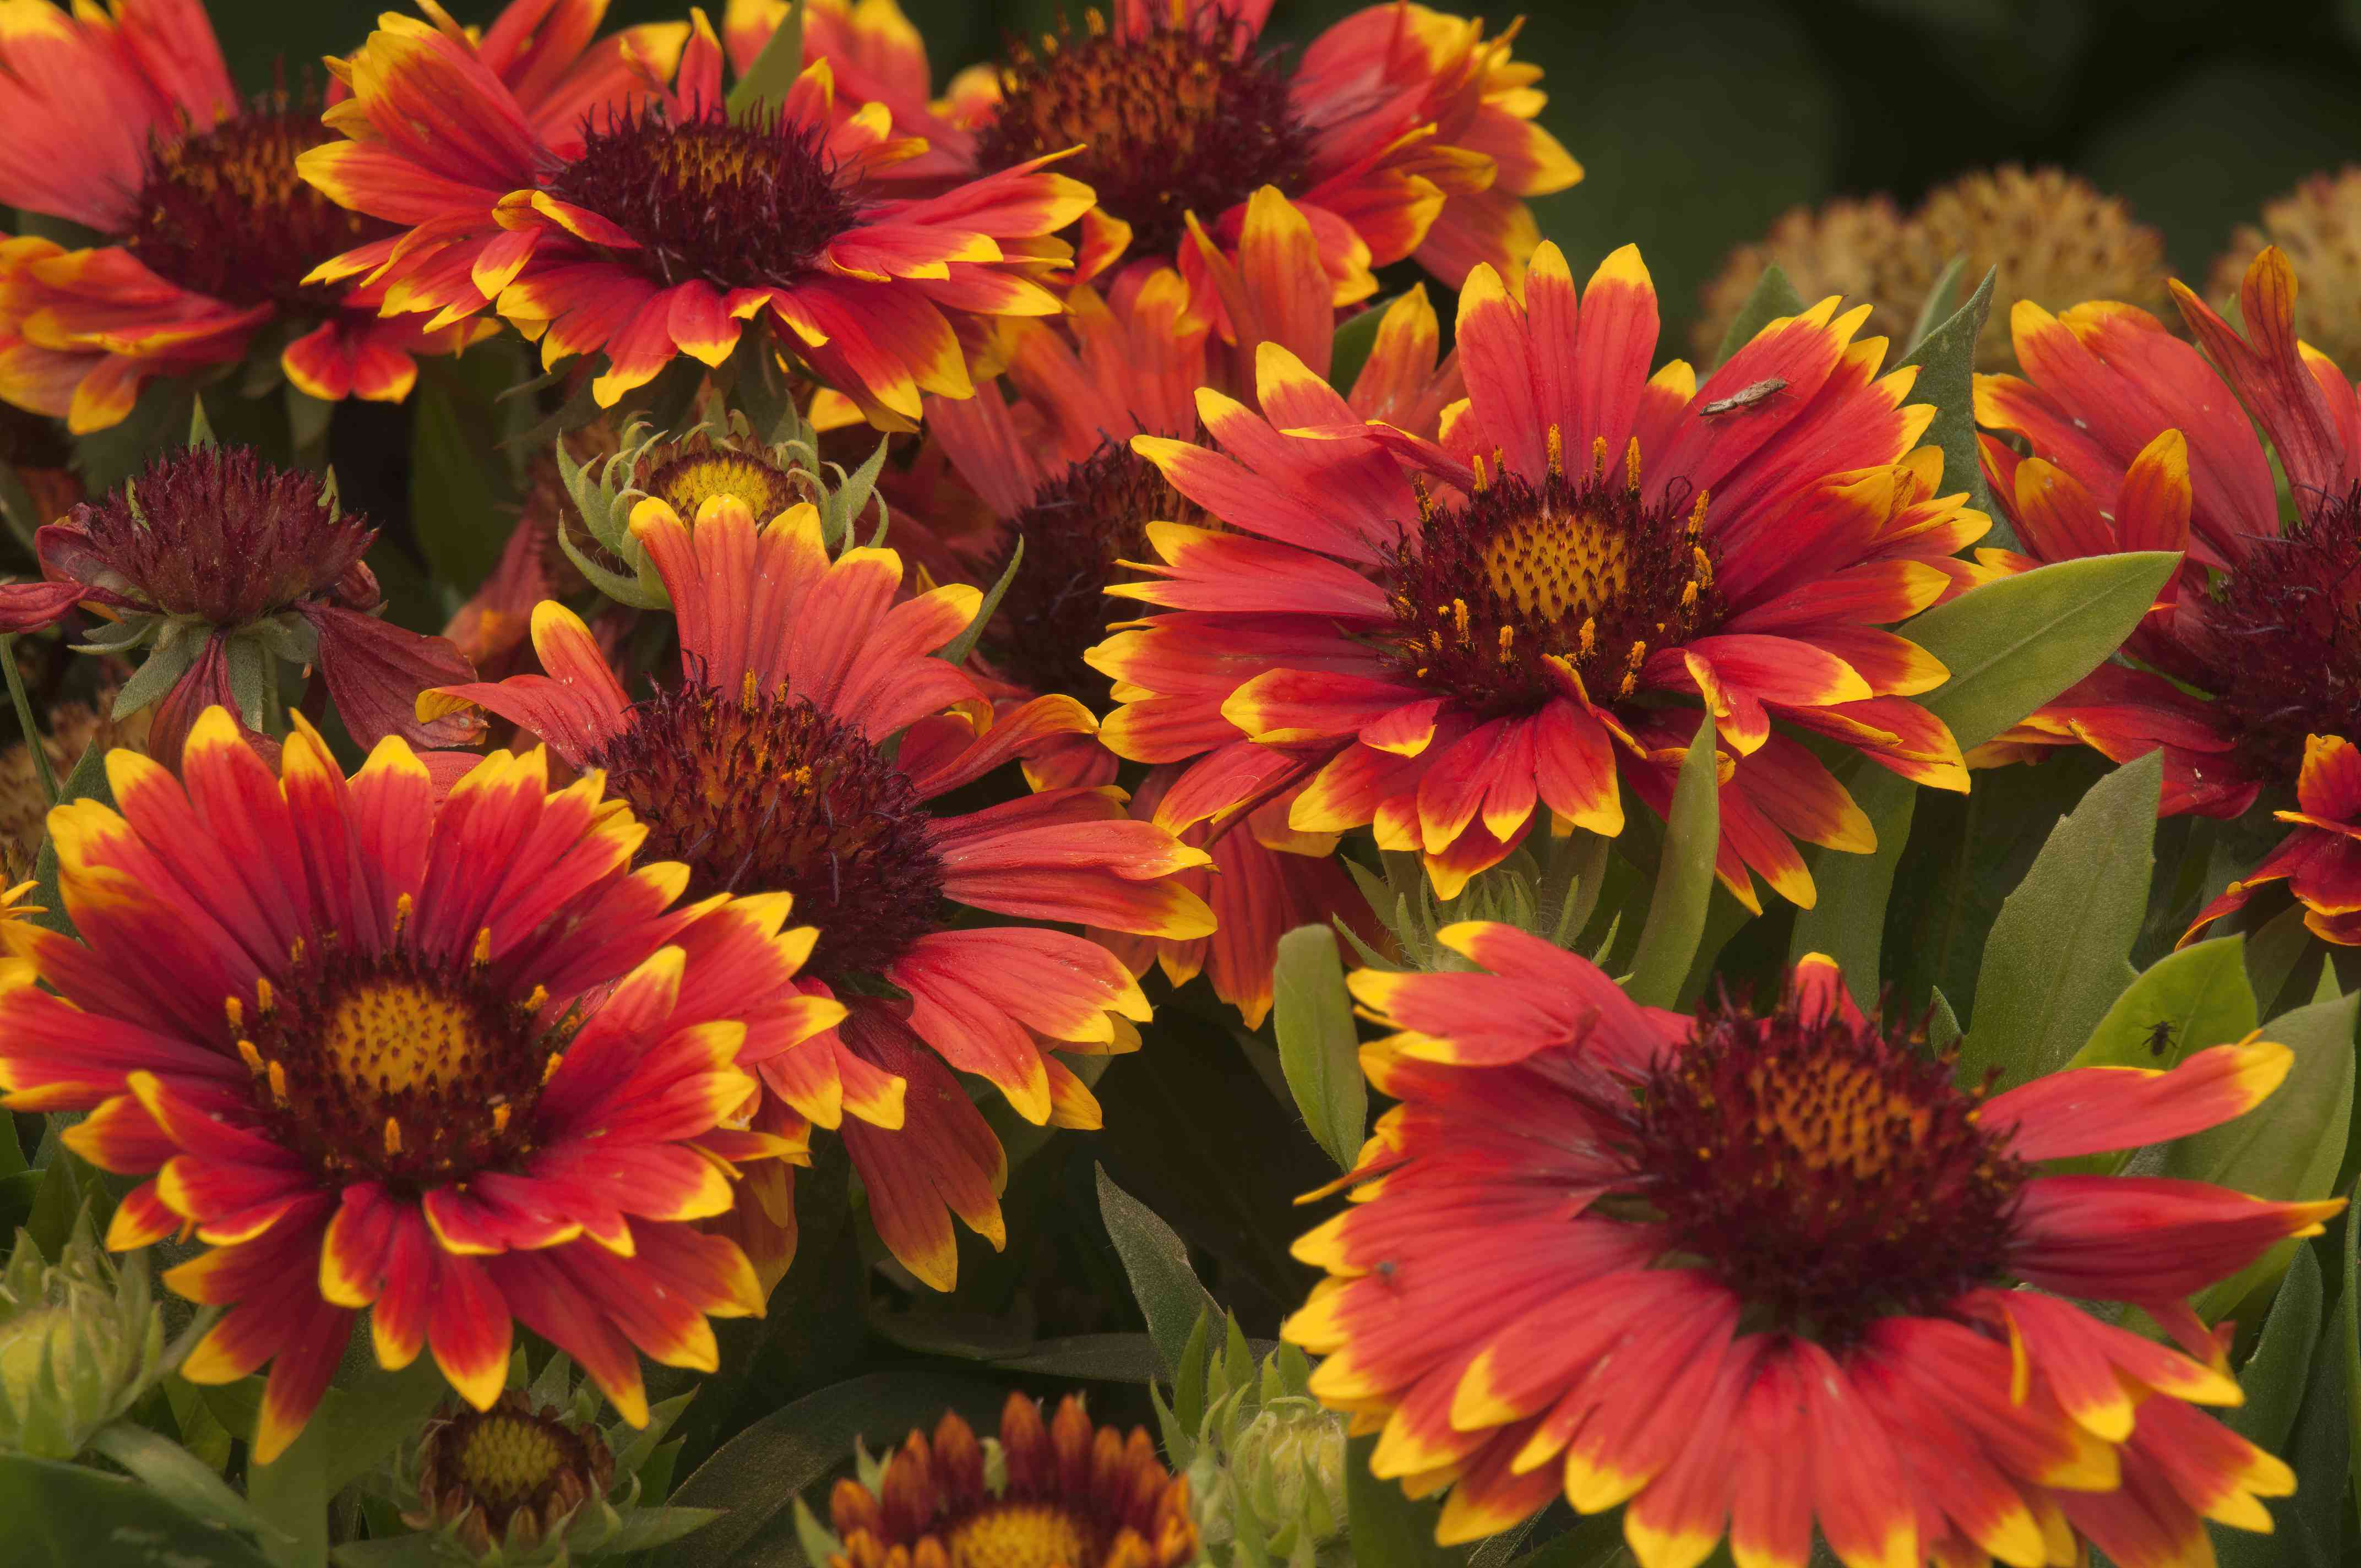 Close-up of a bunch of orange and yellow Gaillardia flowers